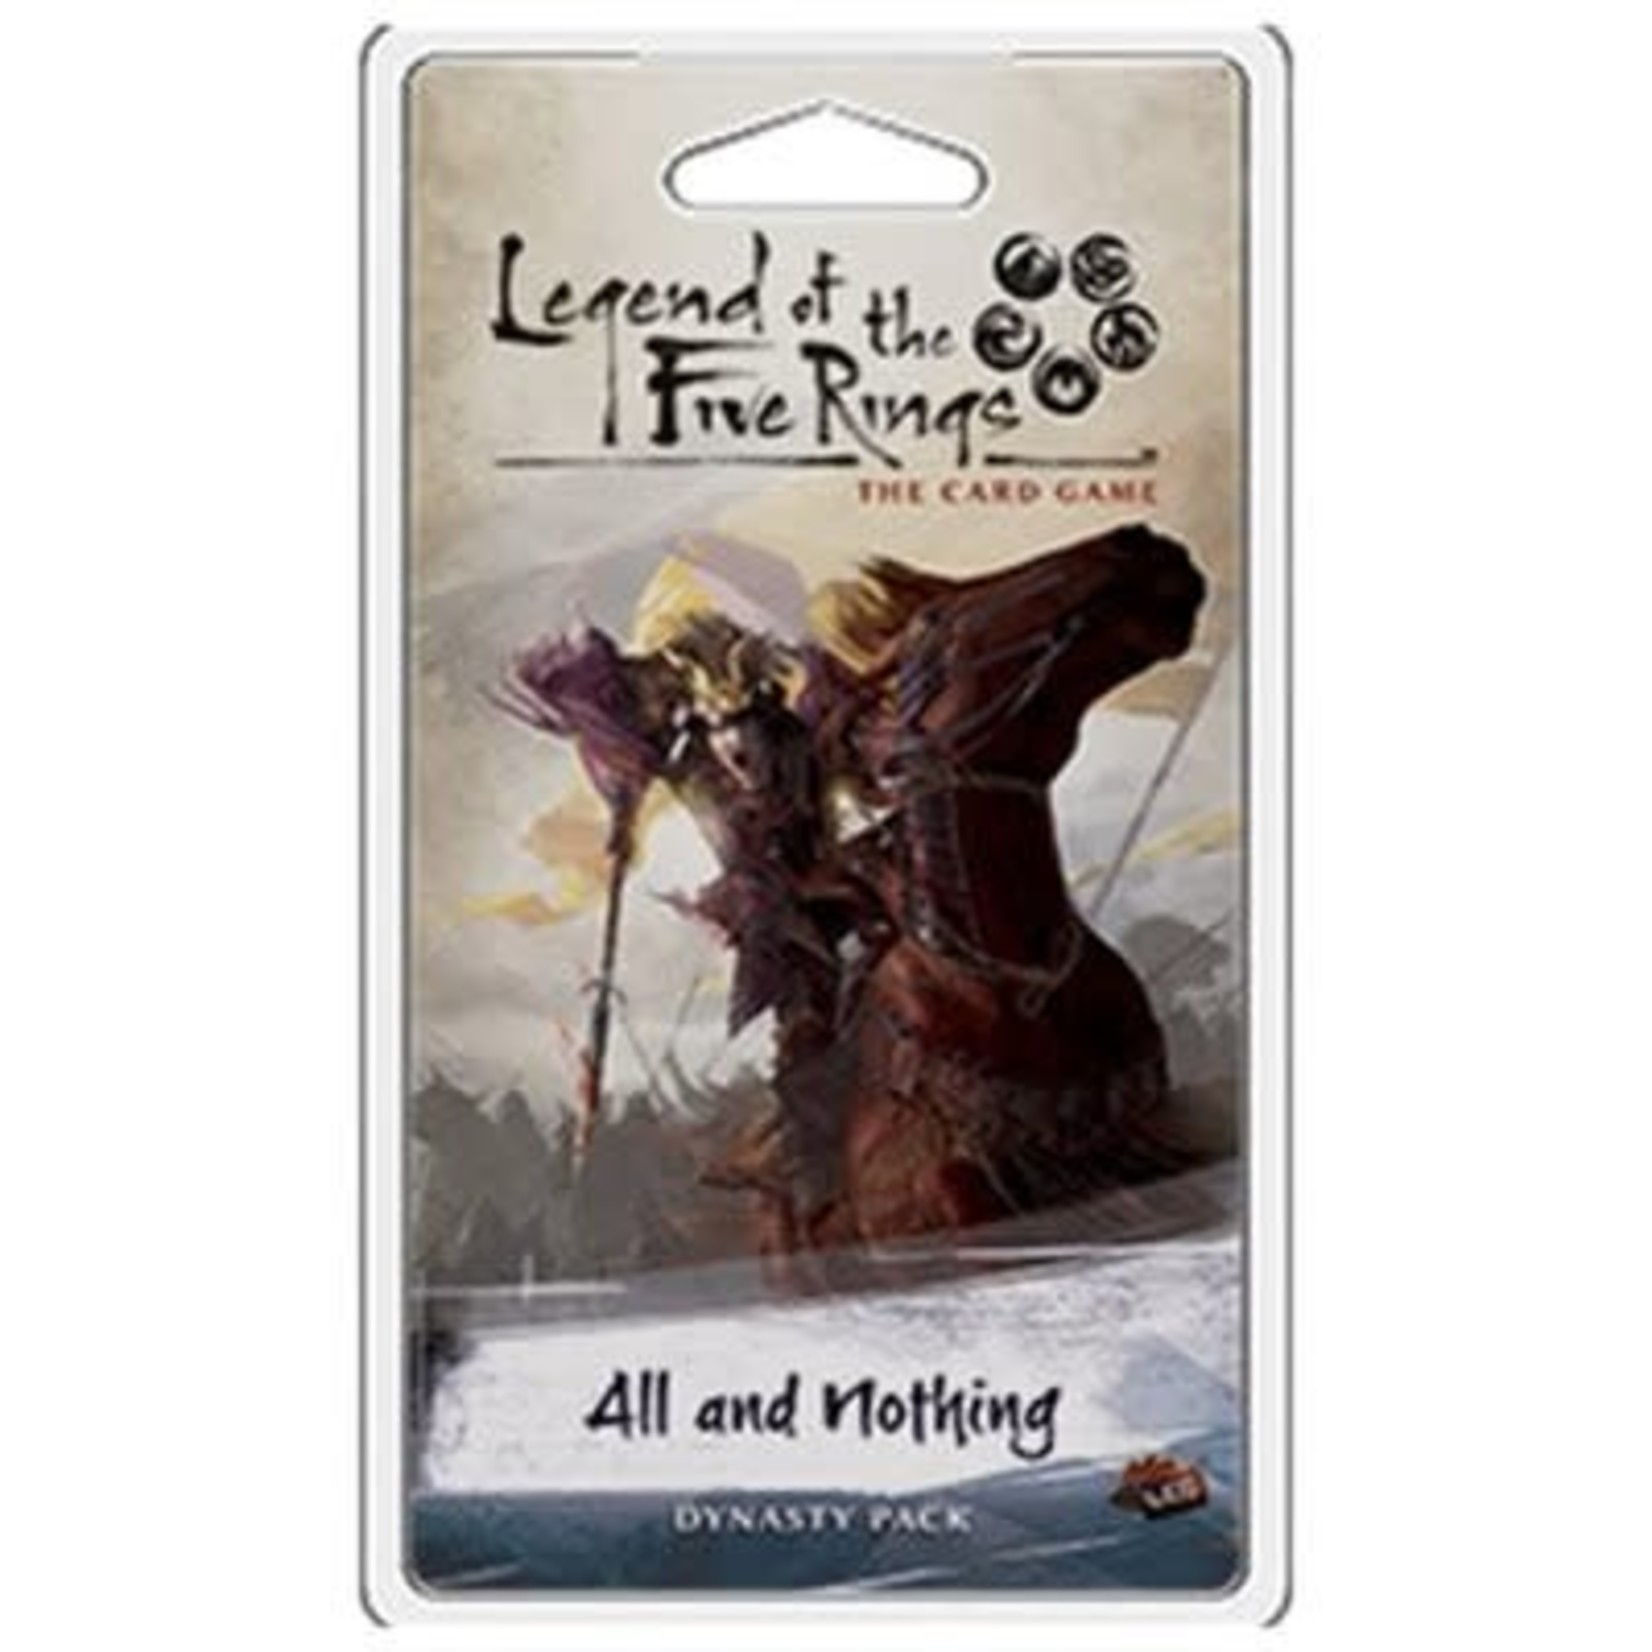 Fantasy Flight Games Legend of the five Rings All and nothing